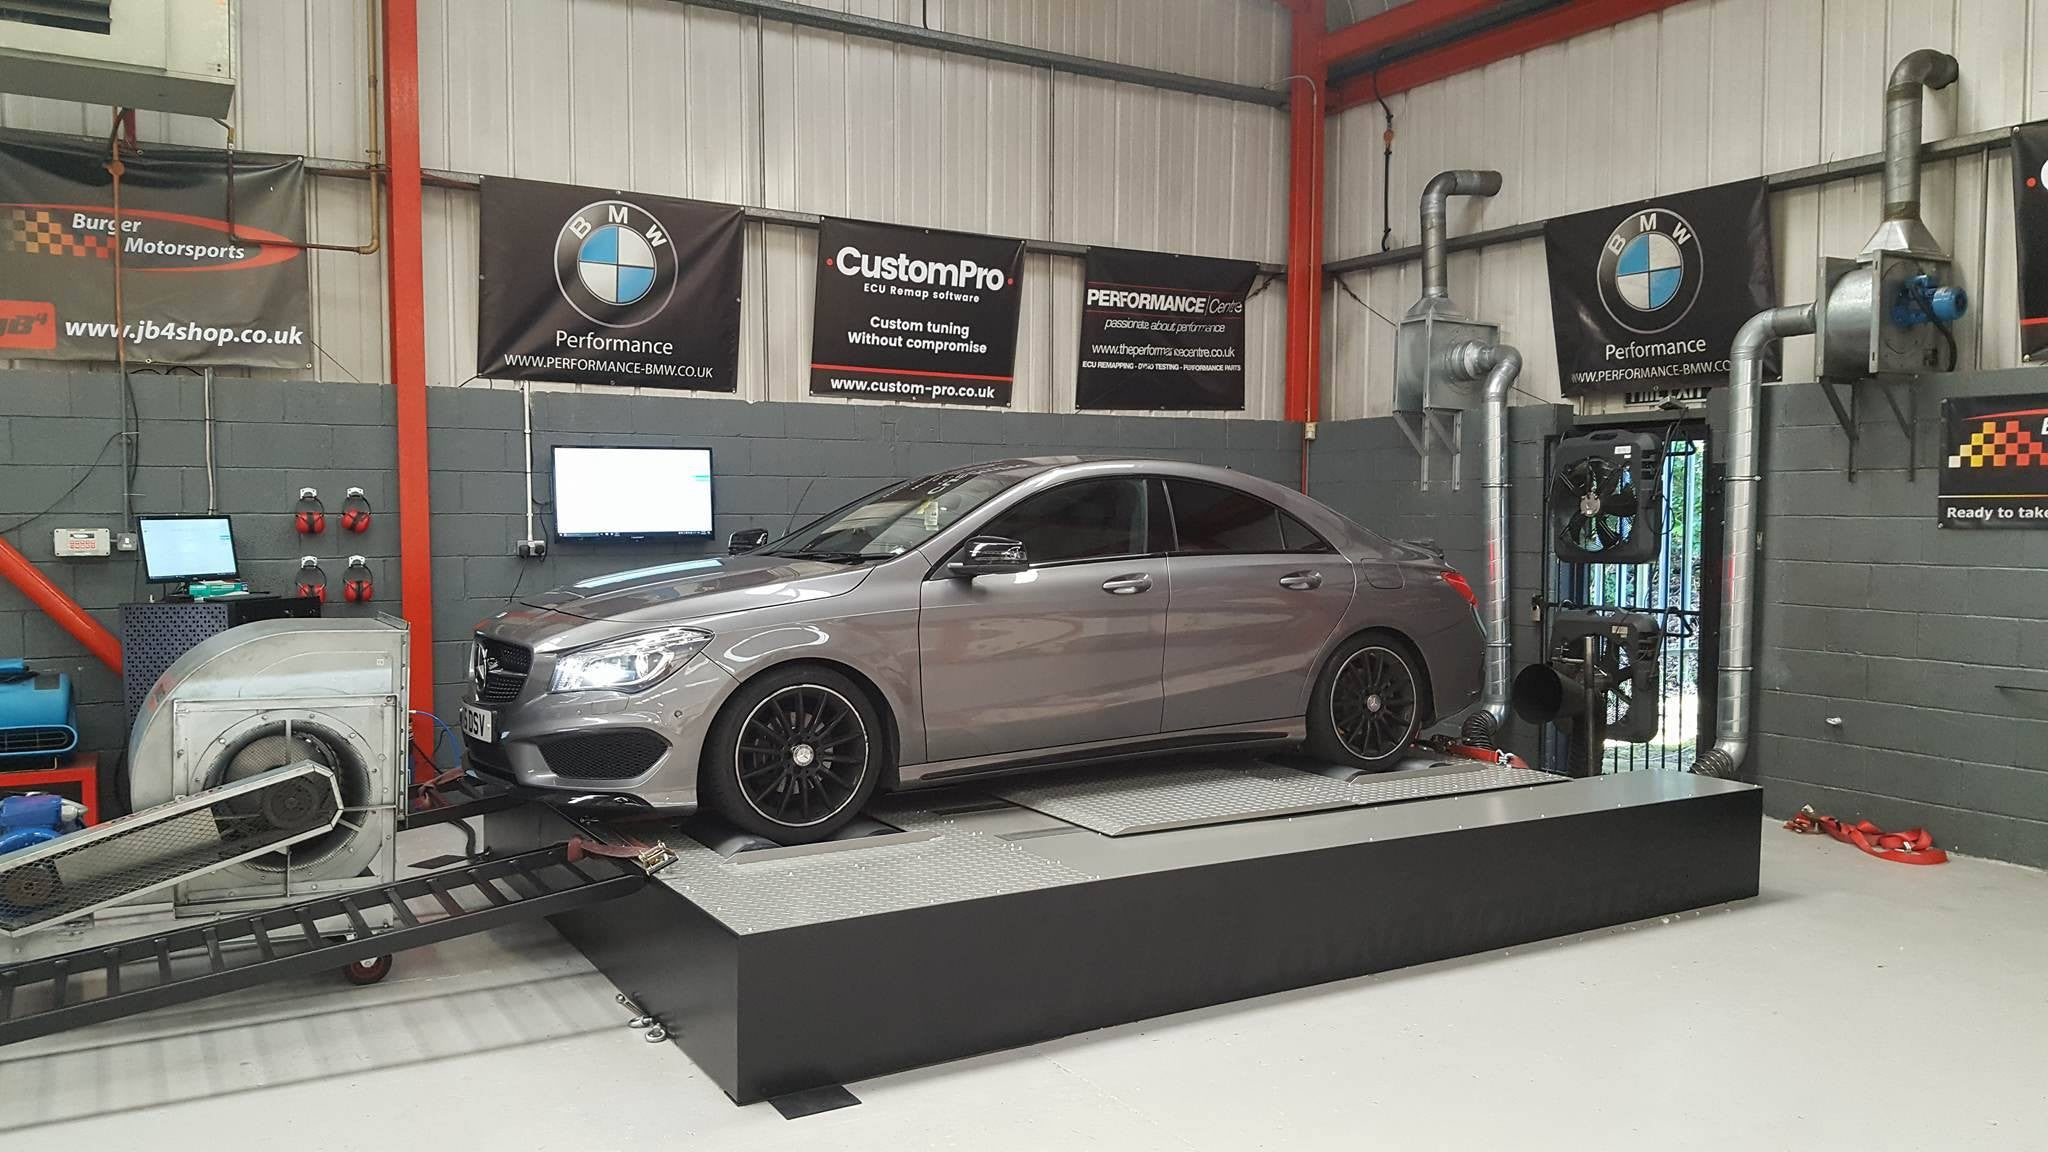 Mercedes CLA200 CDI - CustomPro remap